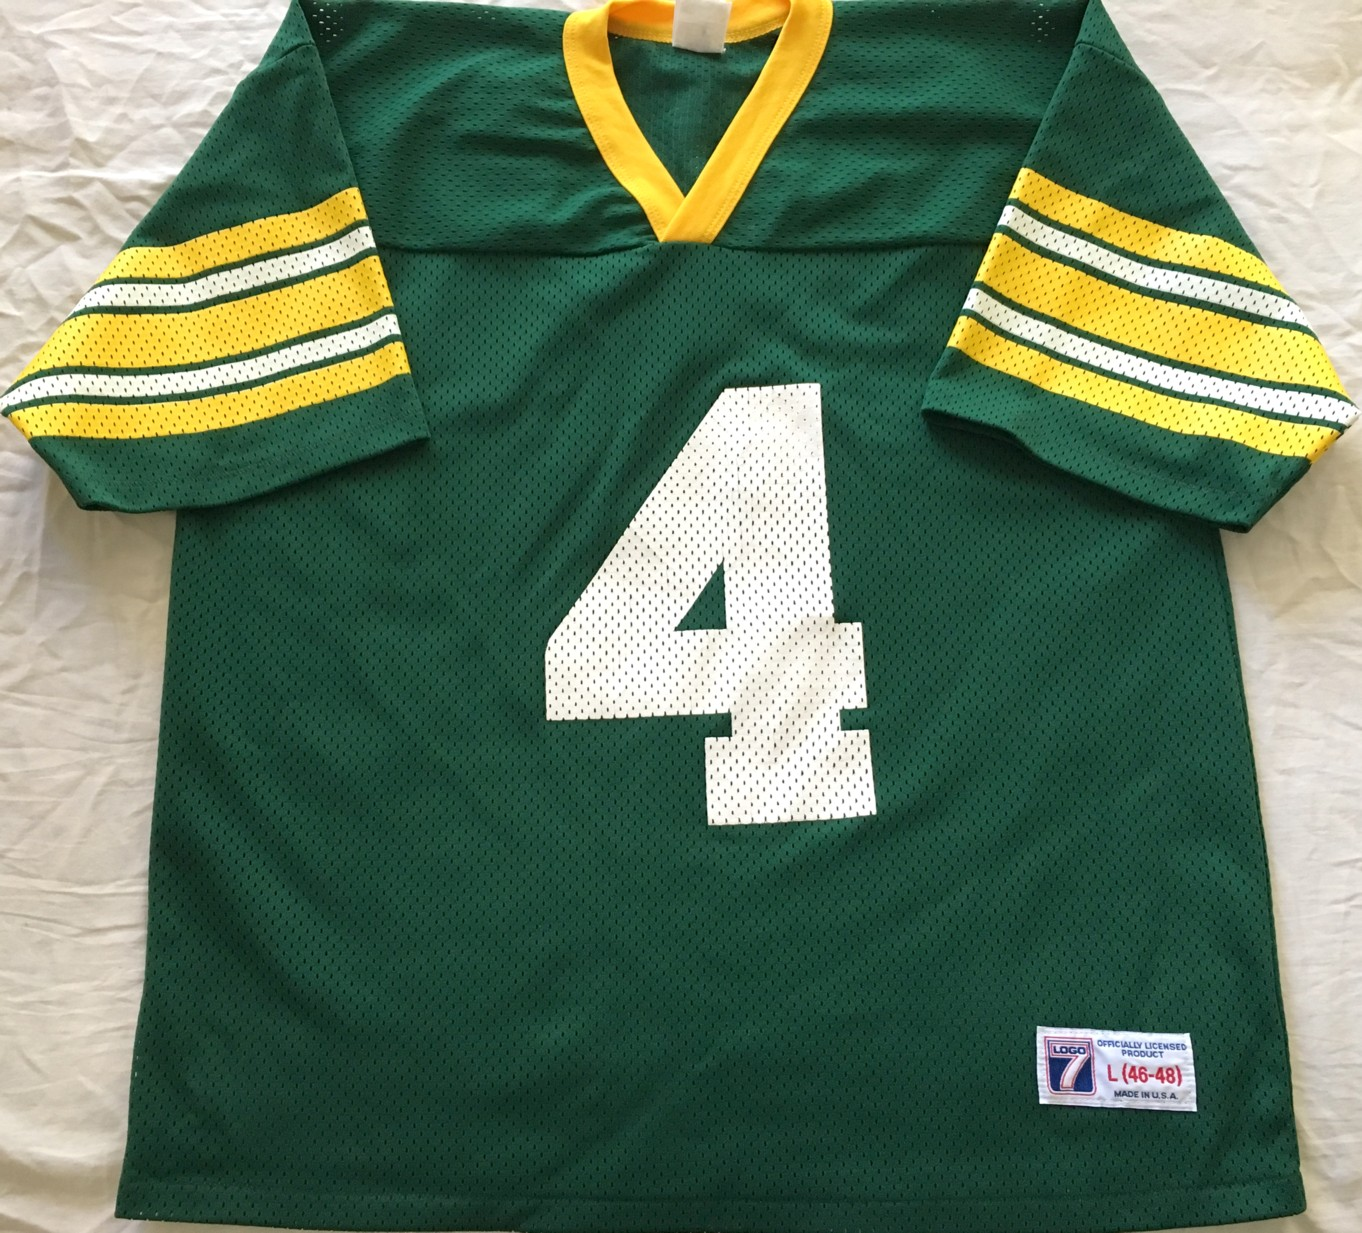 new style 3d0b8 b7ff0 Brett Favre Green Bay Packers authentic Logo Athletic green ...